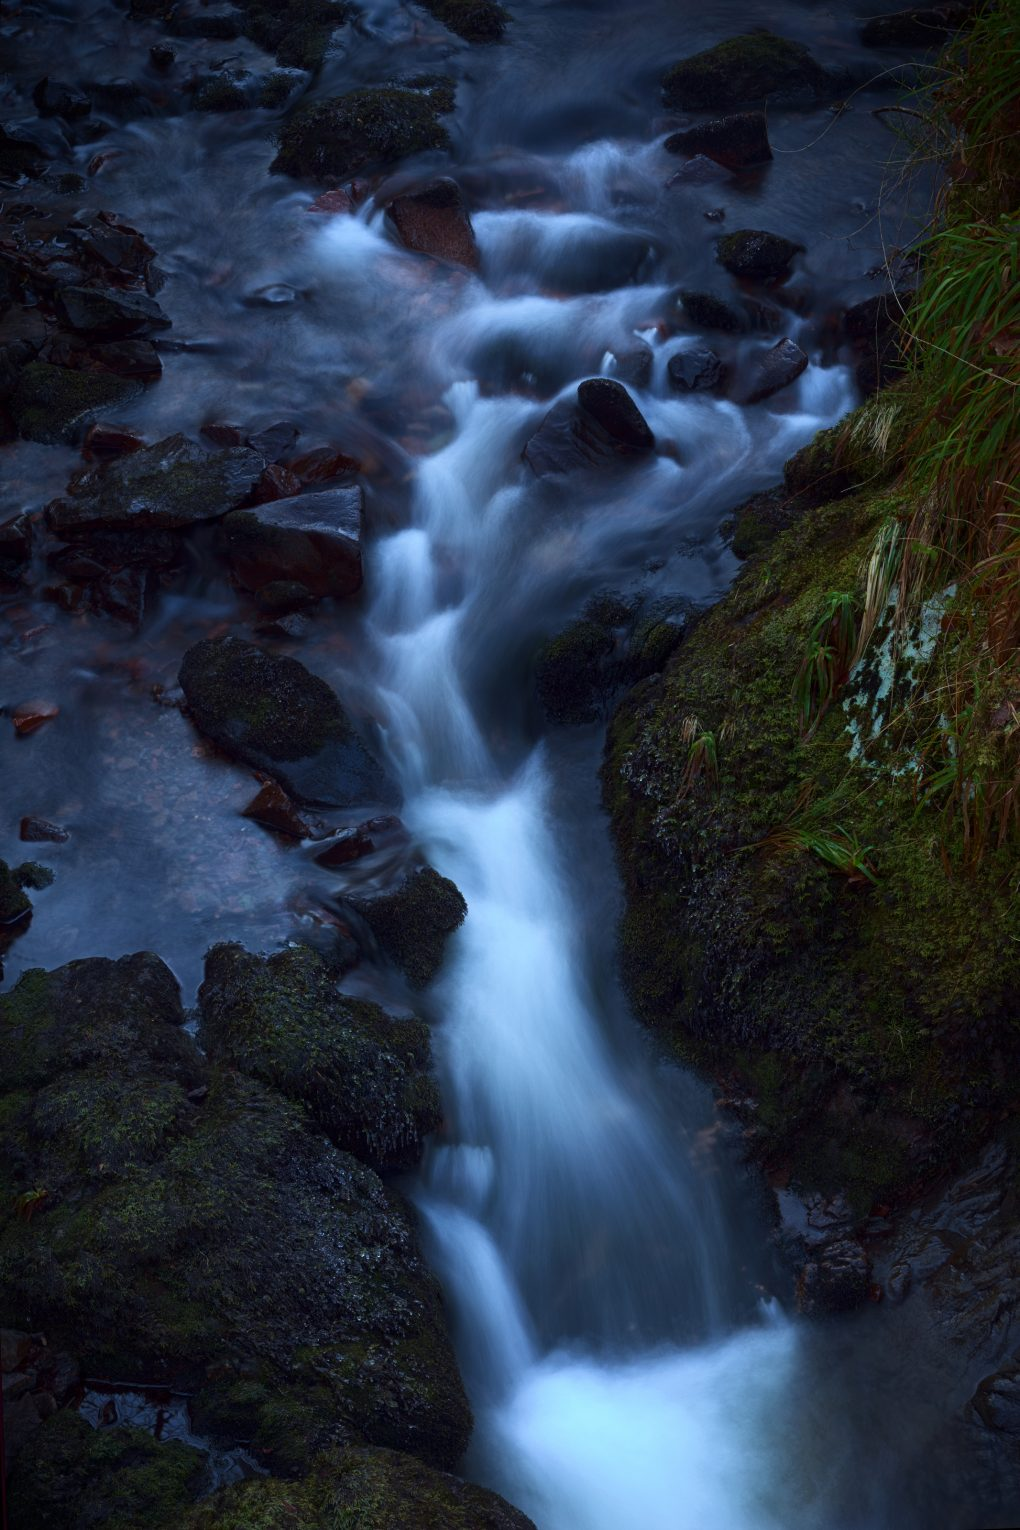 Detail of a small burn in Glen Nant